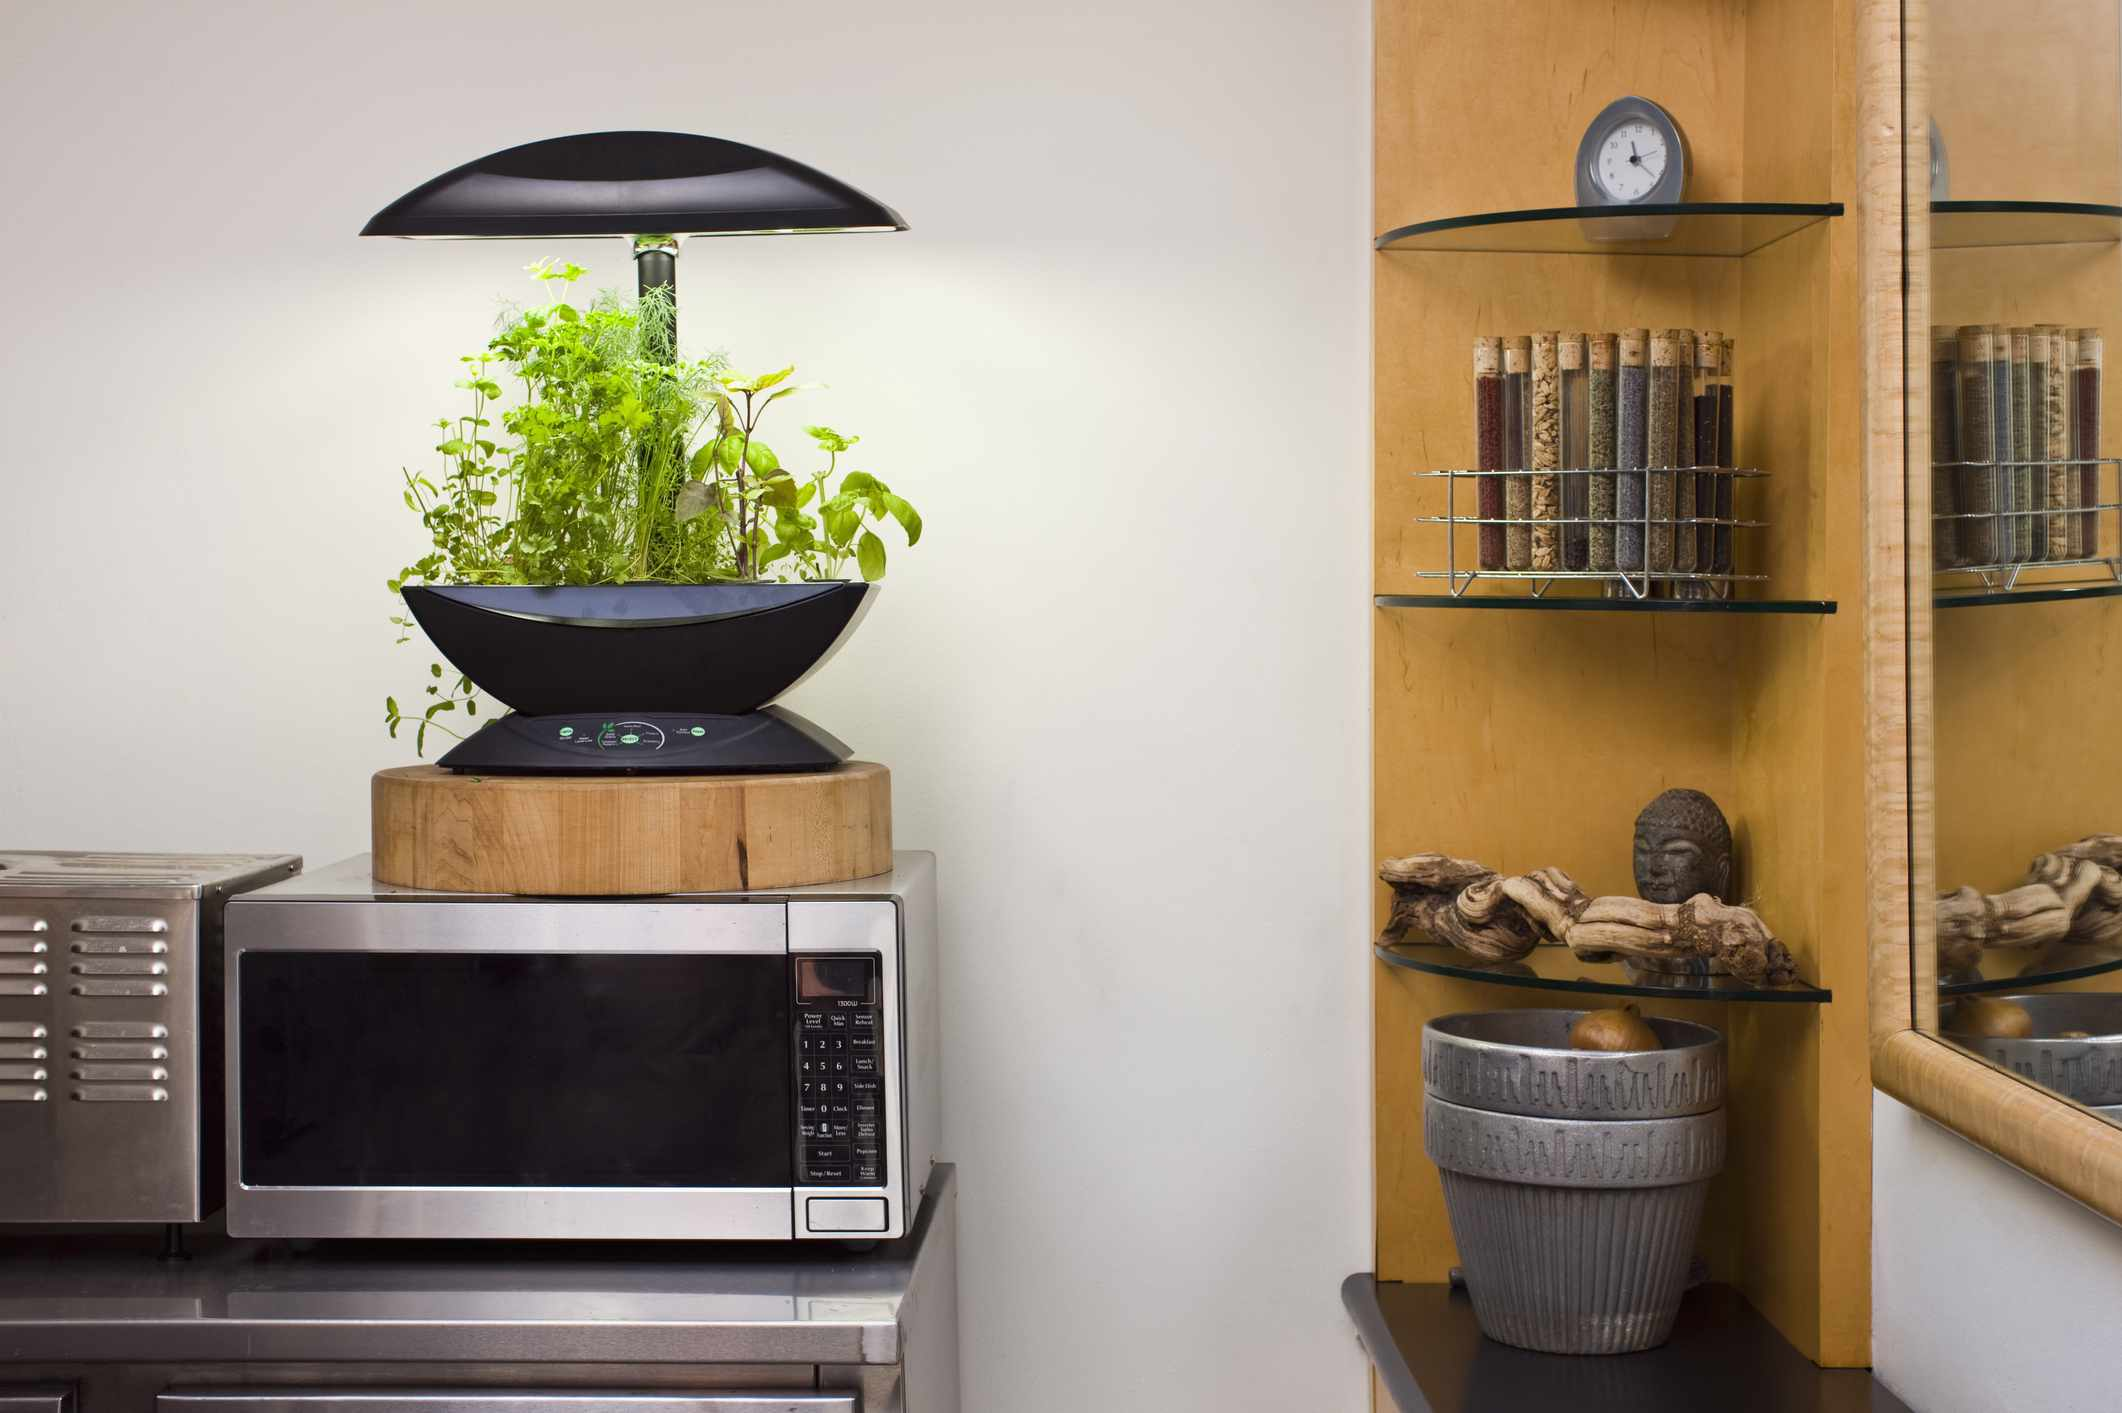 hydroponic LED herb garden kit on top of microwave in kitchen